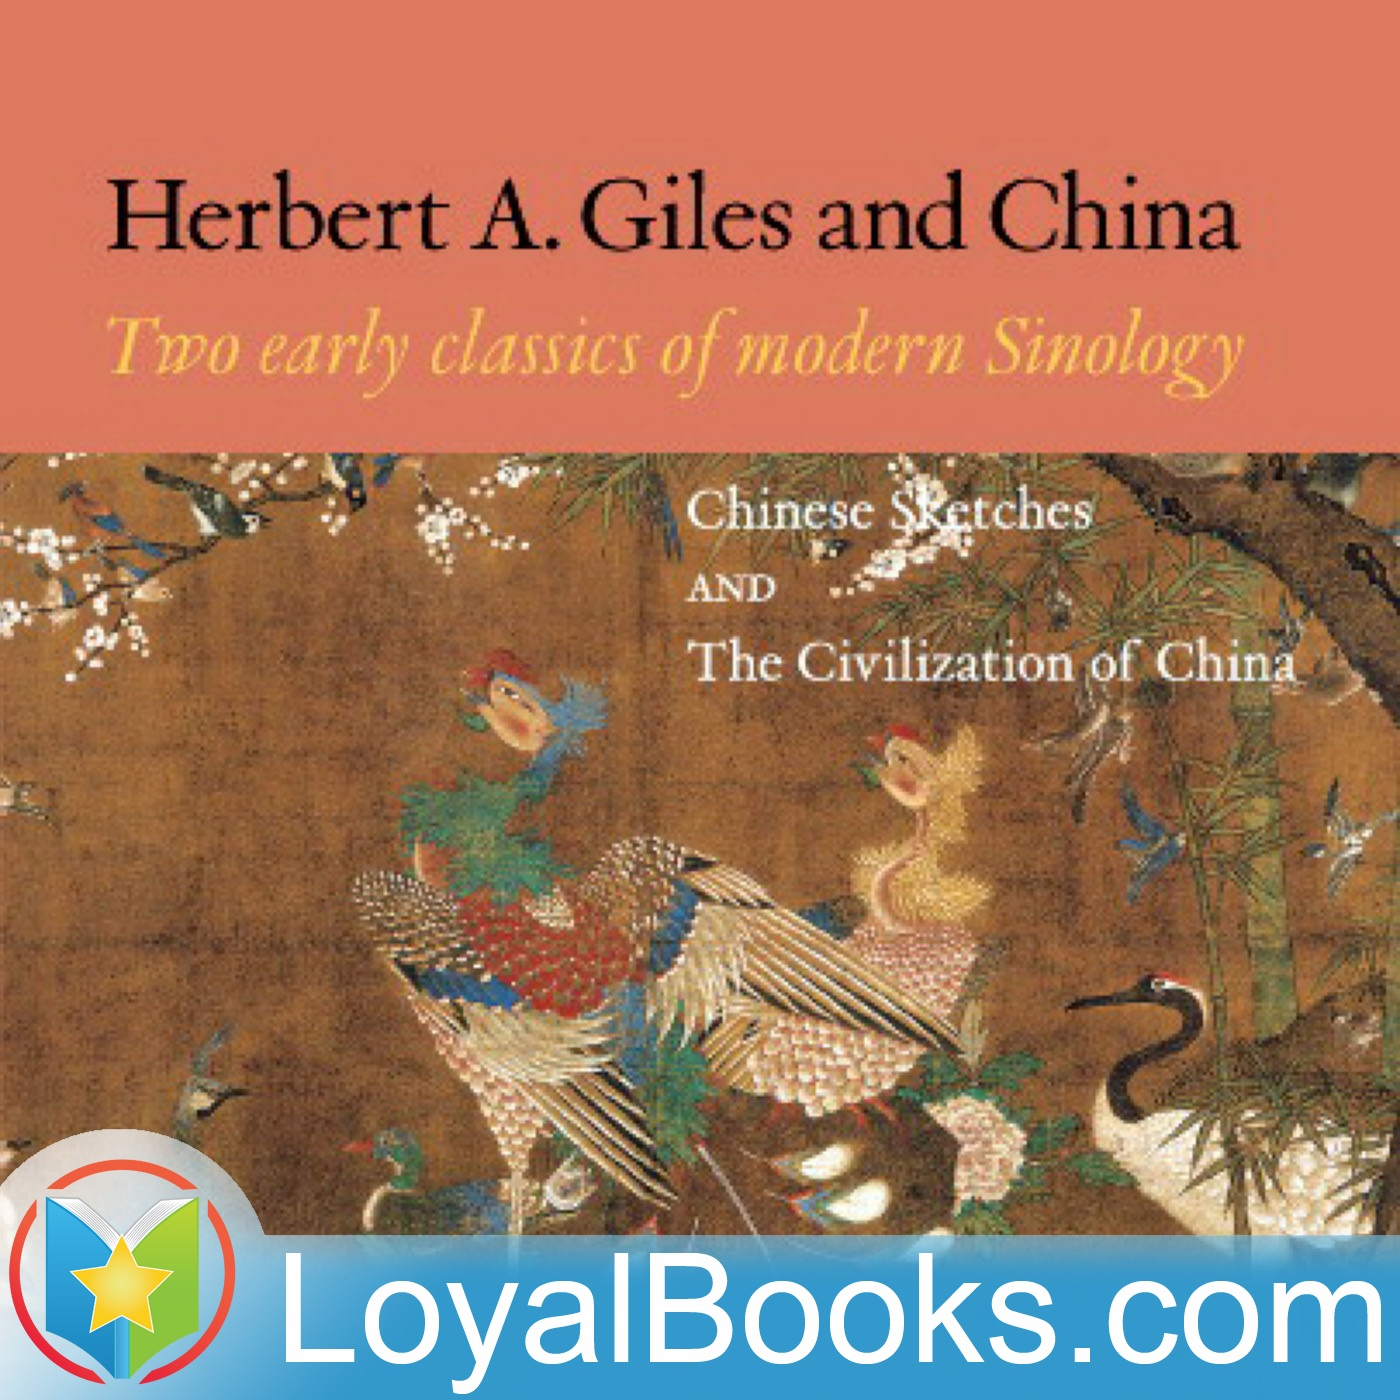 <![CDATA[China and the Chinese by Herbert Allen Giles]]>